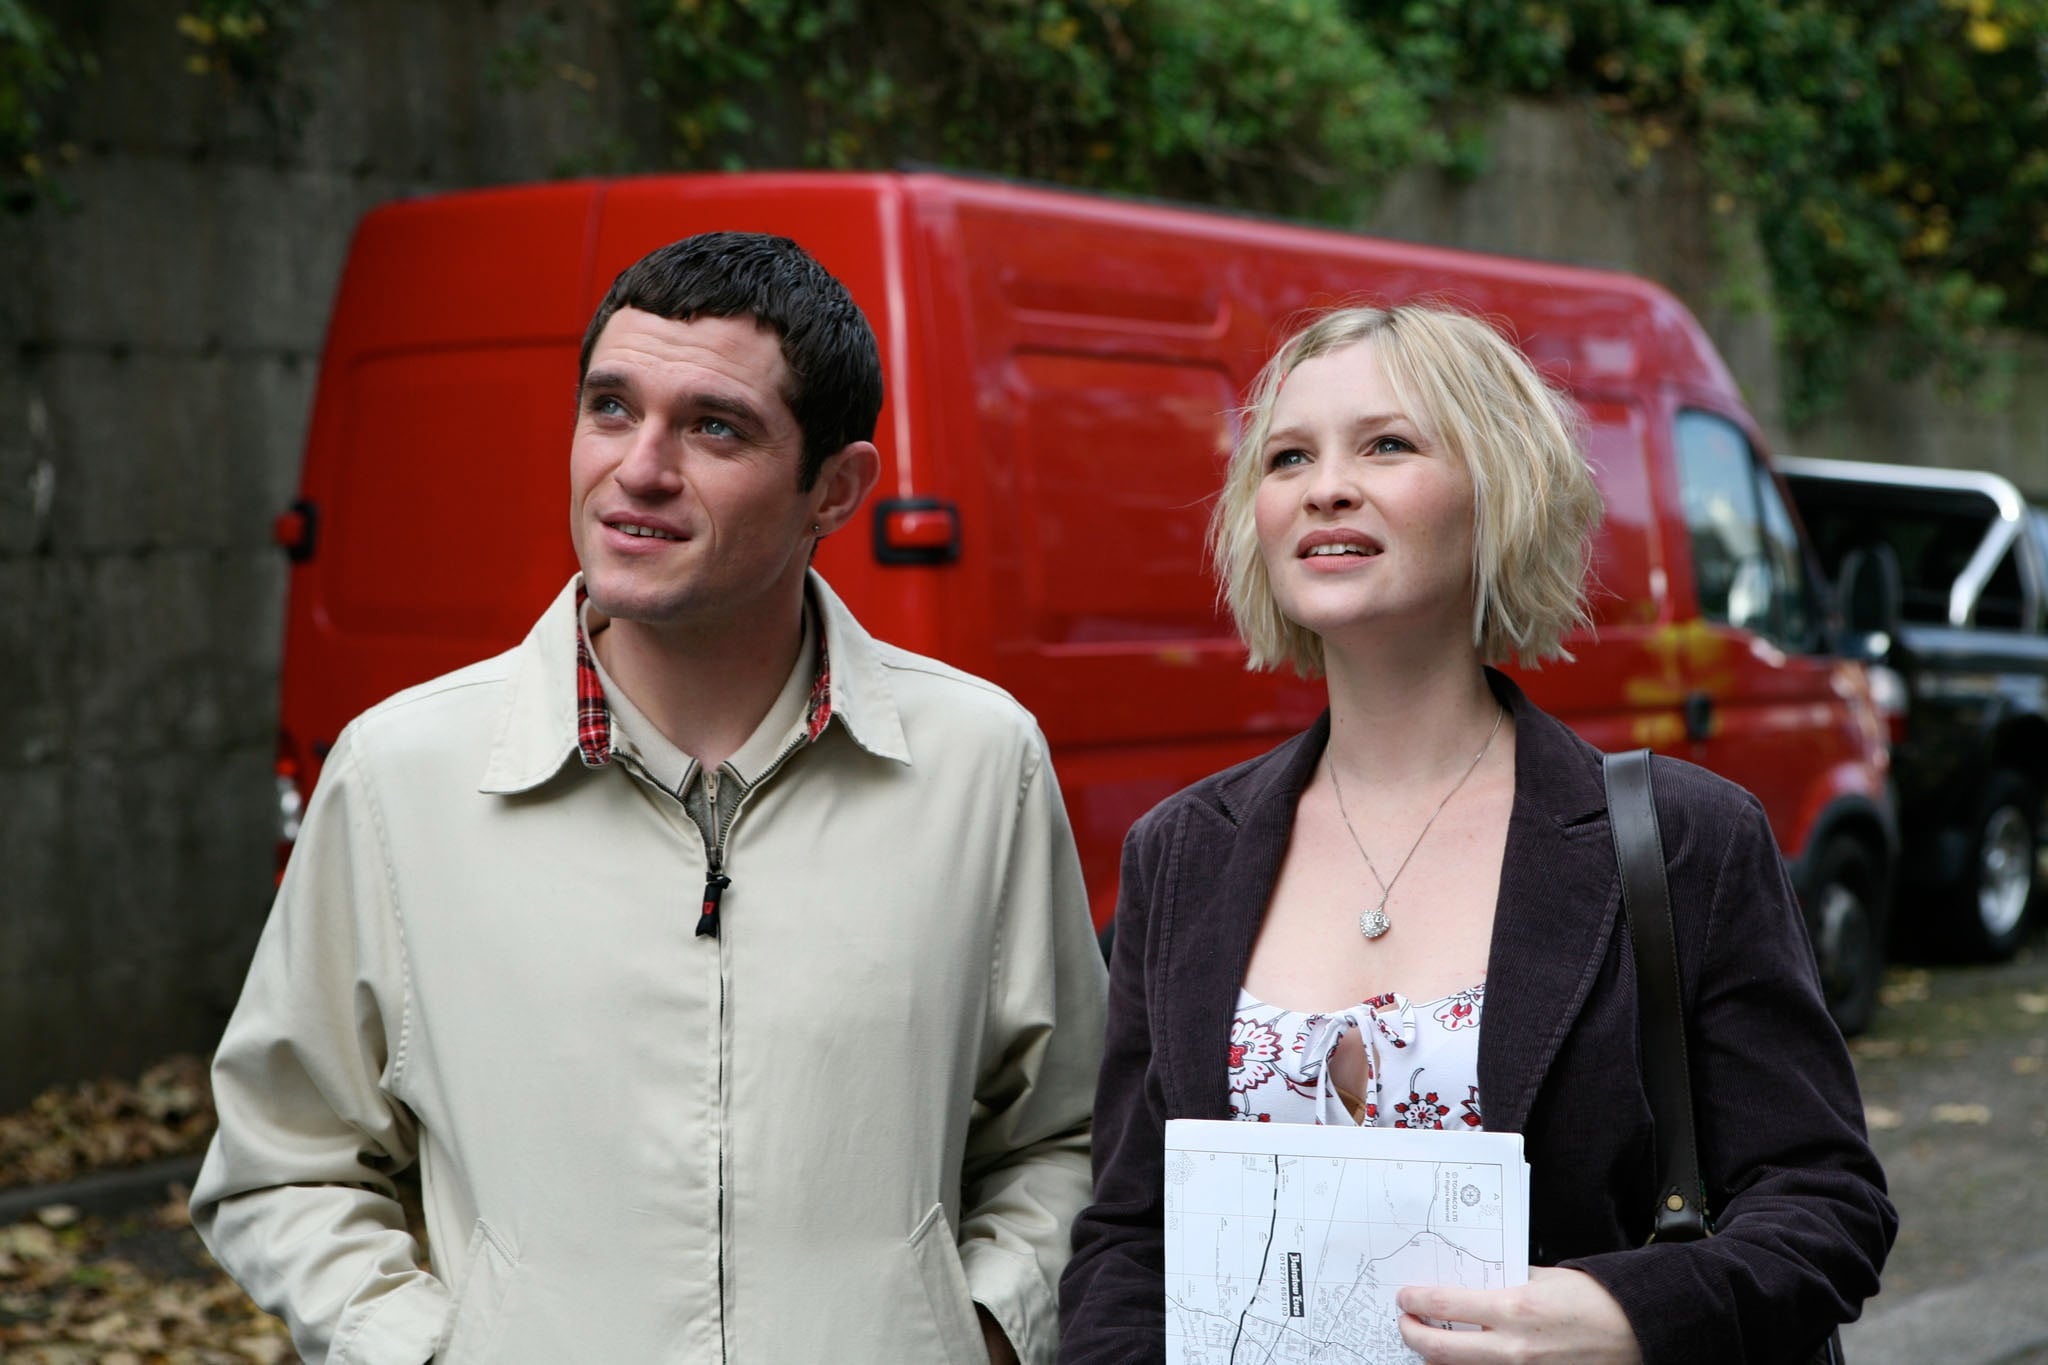 GAVIN AND STACEY, (from left): Mathew Horne, Joanna Page, (Season 2, 2008), 2007-10. BBC / Courtesy: Everett Collection